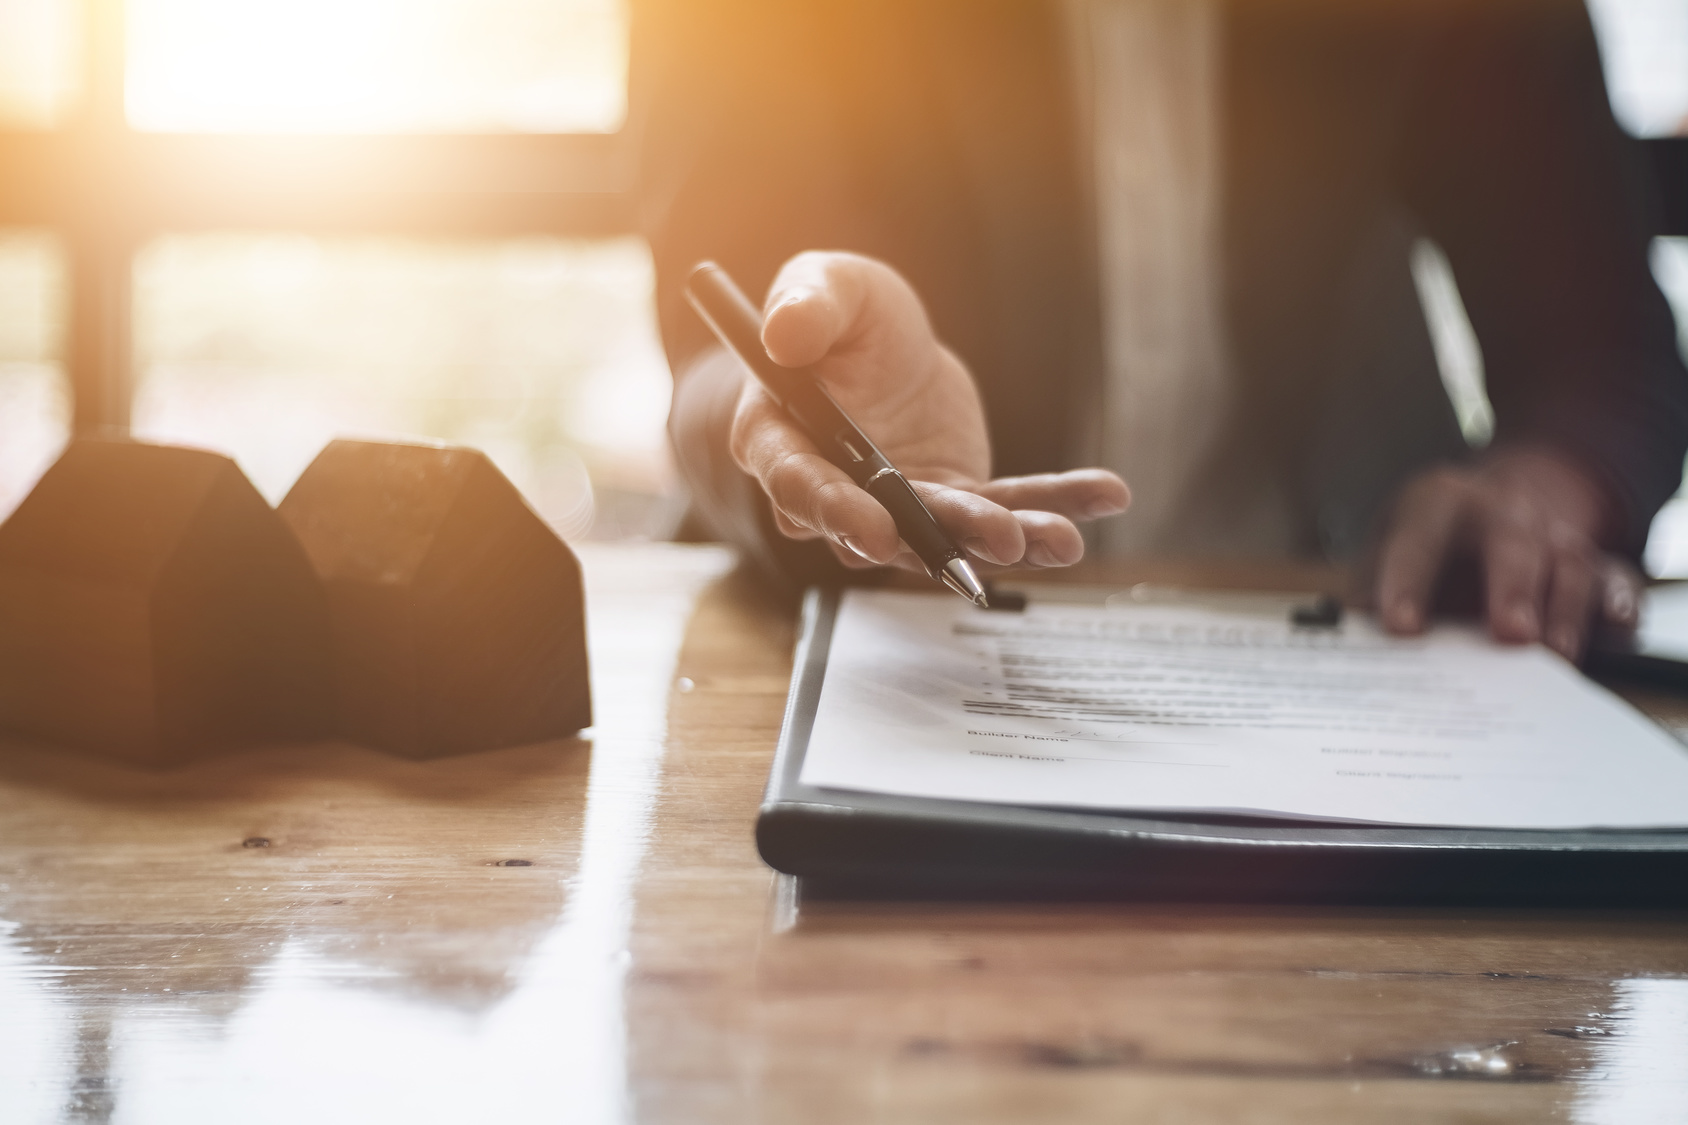 Man-Giving-Pen-to-Sign-Real-Estate-Documents